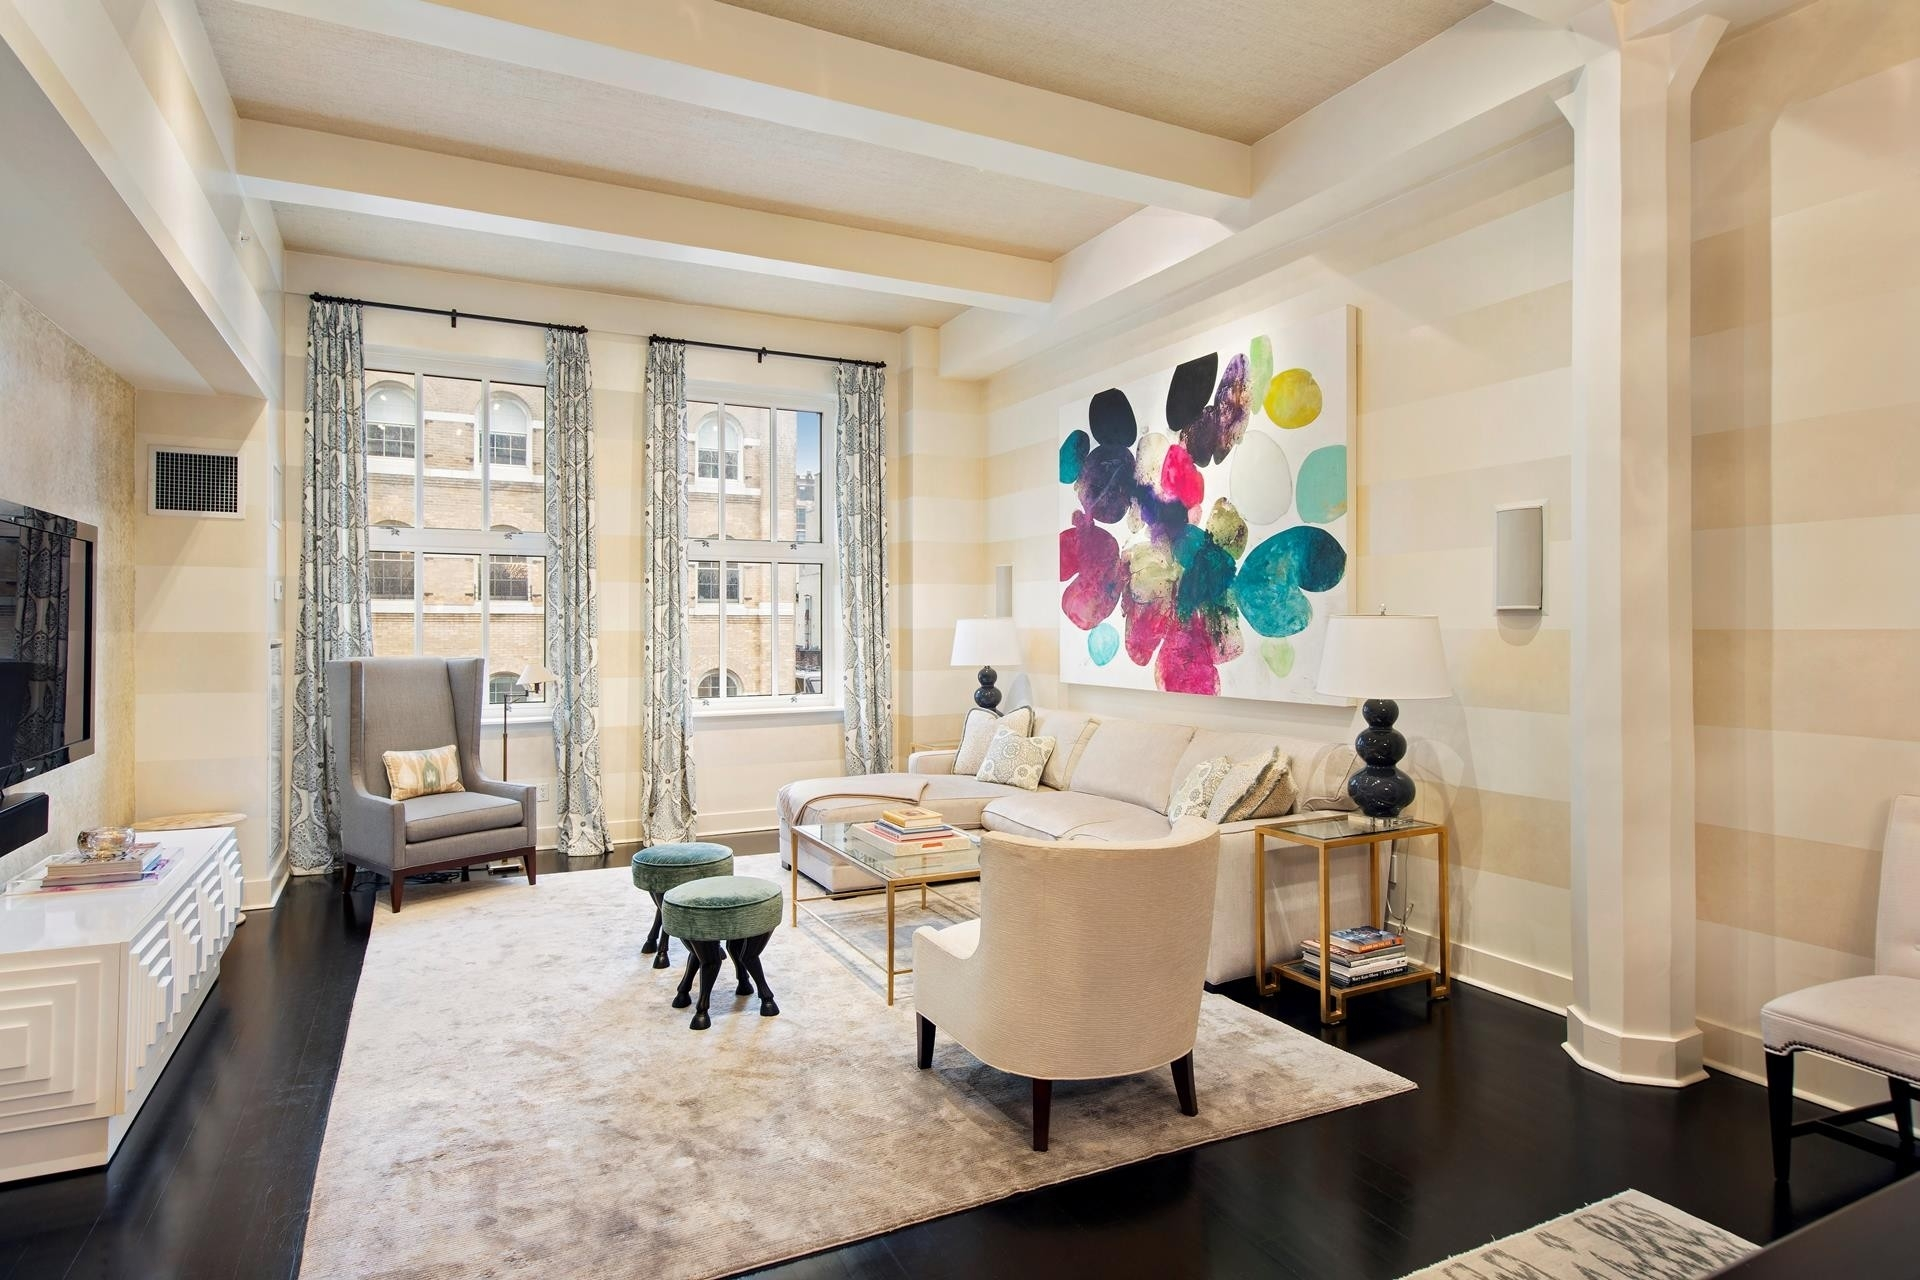 Condominium for Sale at TRIBECA SUMMIT, 415 Greenwich St, 6A TriBeCa, New York, NY 10013